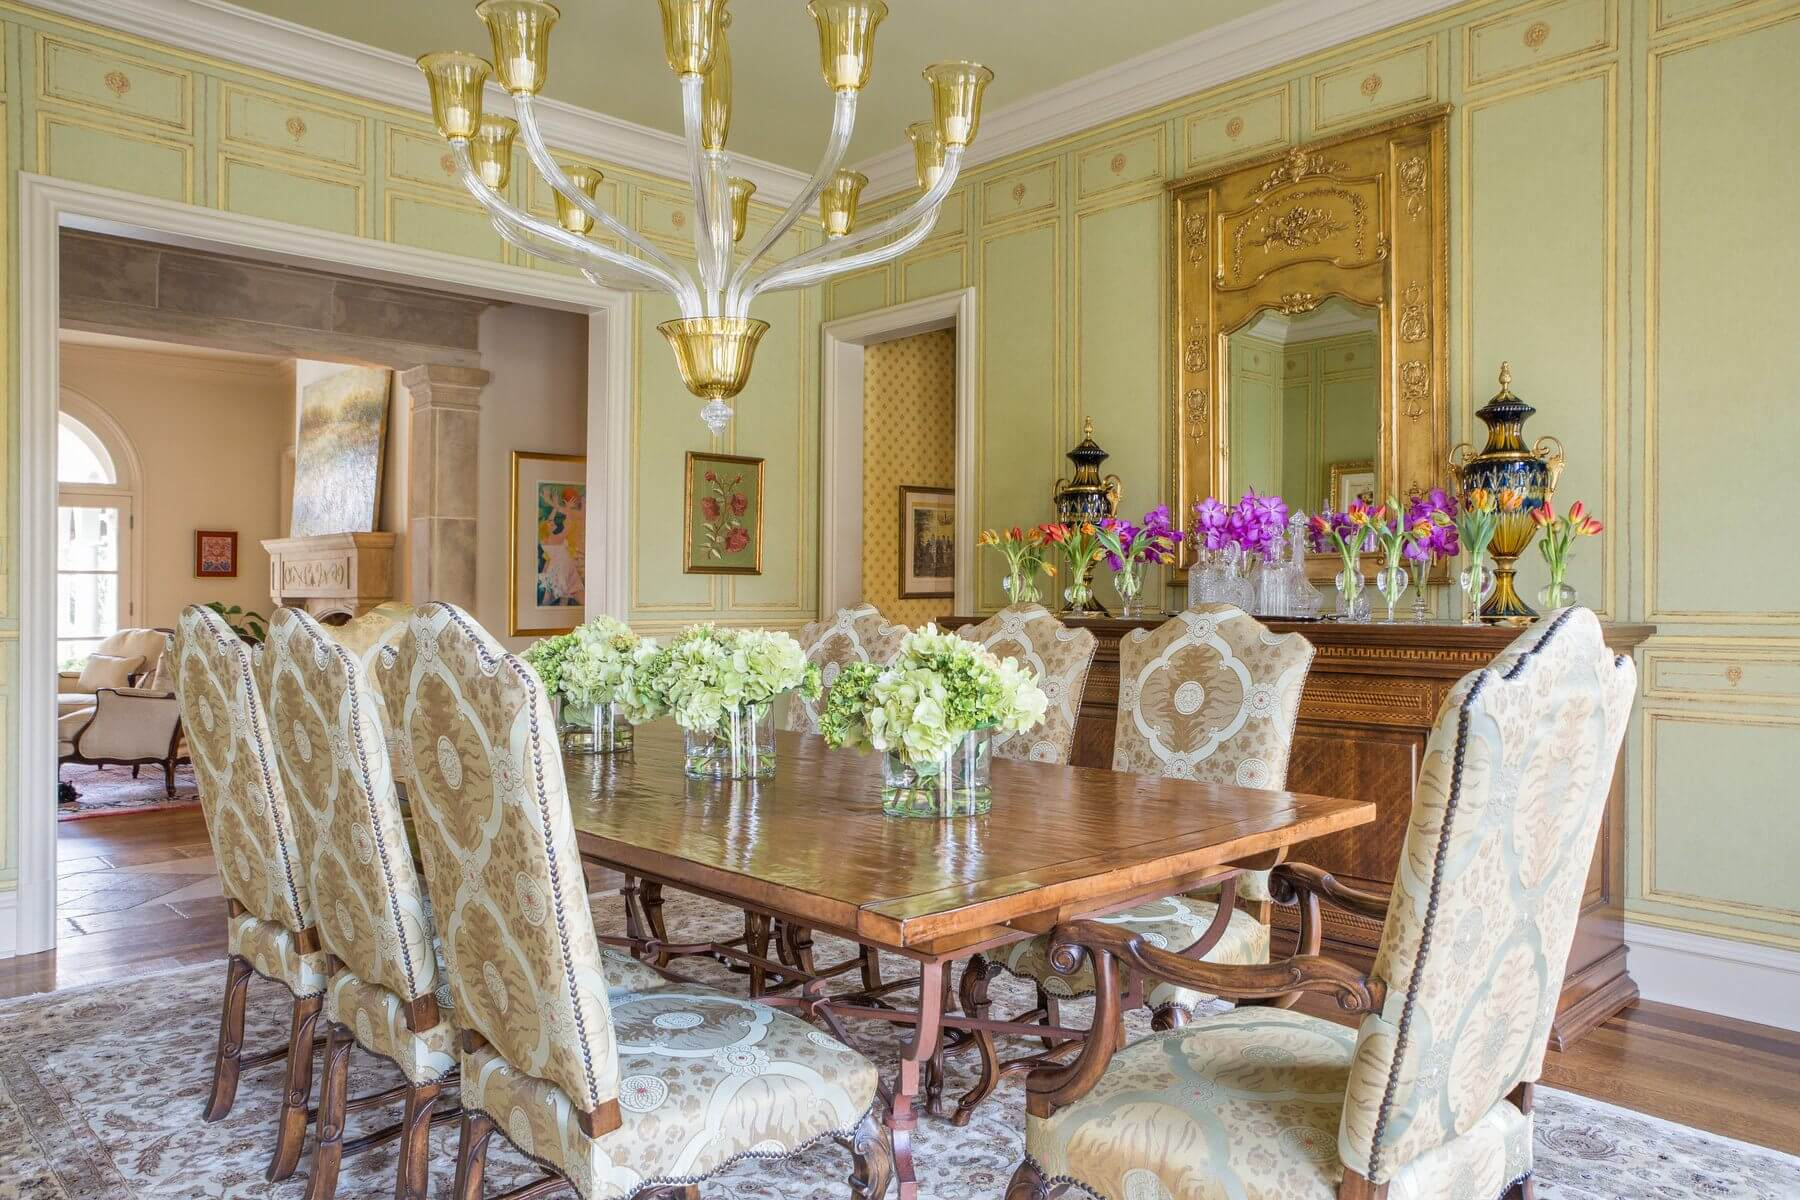 The Floral Accents And Accessories Around Room Complement Colors Patterns Rather Than Competing